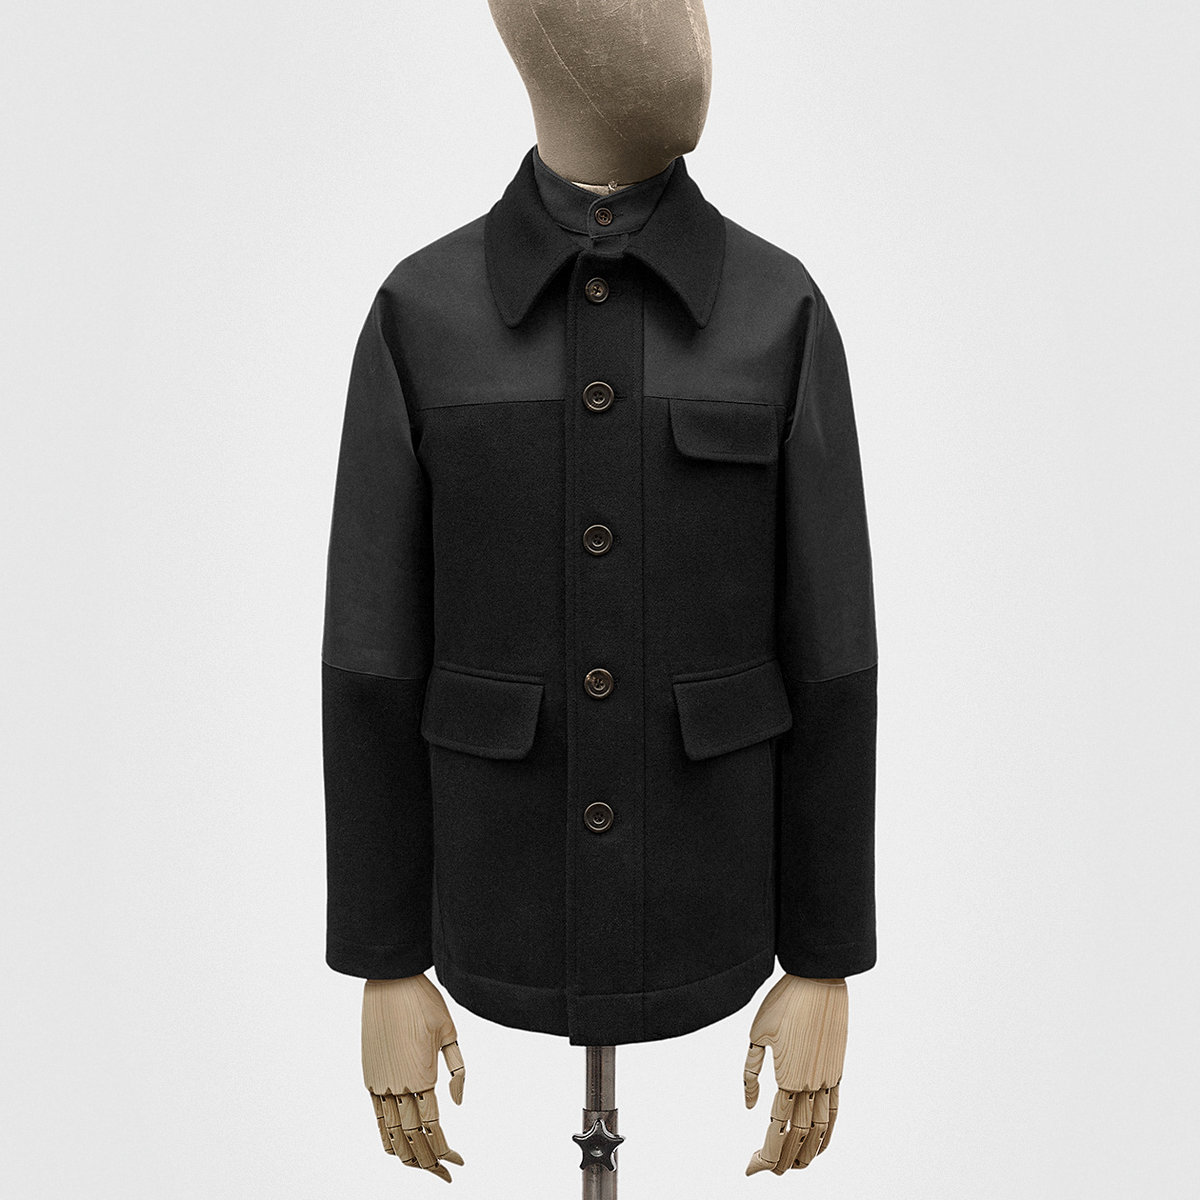 donkey-jacket-woollen-melton-cotton-black-1@2x.jpg